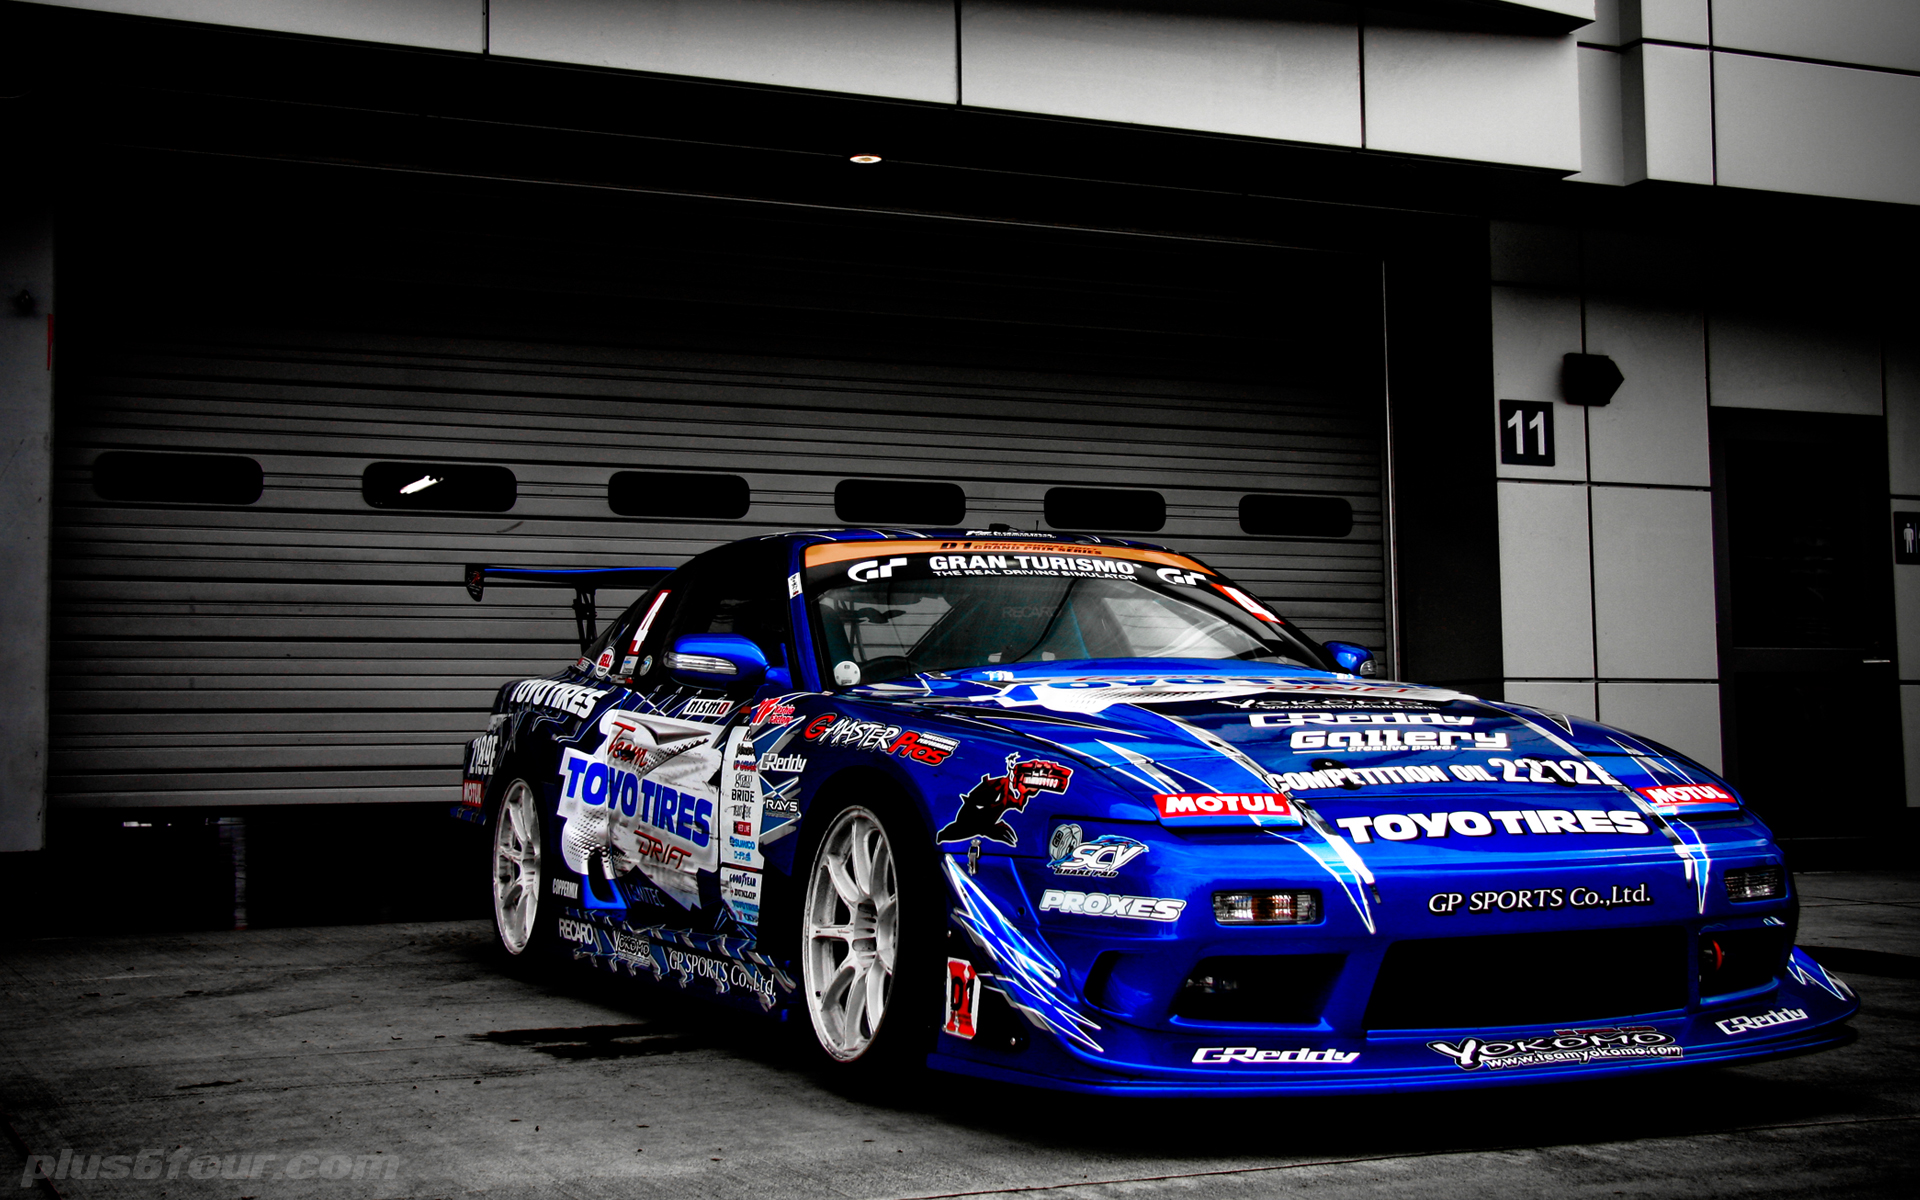 Drifting cars tuning nissan 240sx wallpaper backgroundDrifting Cars Wallpaper